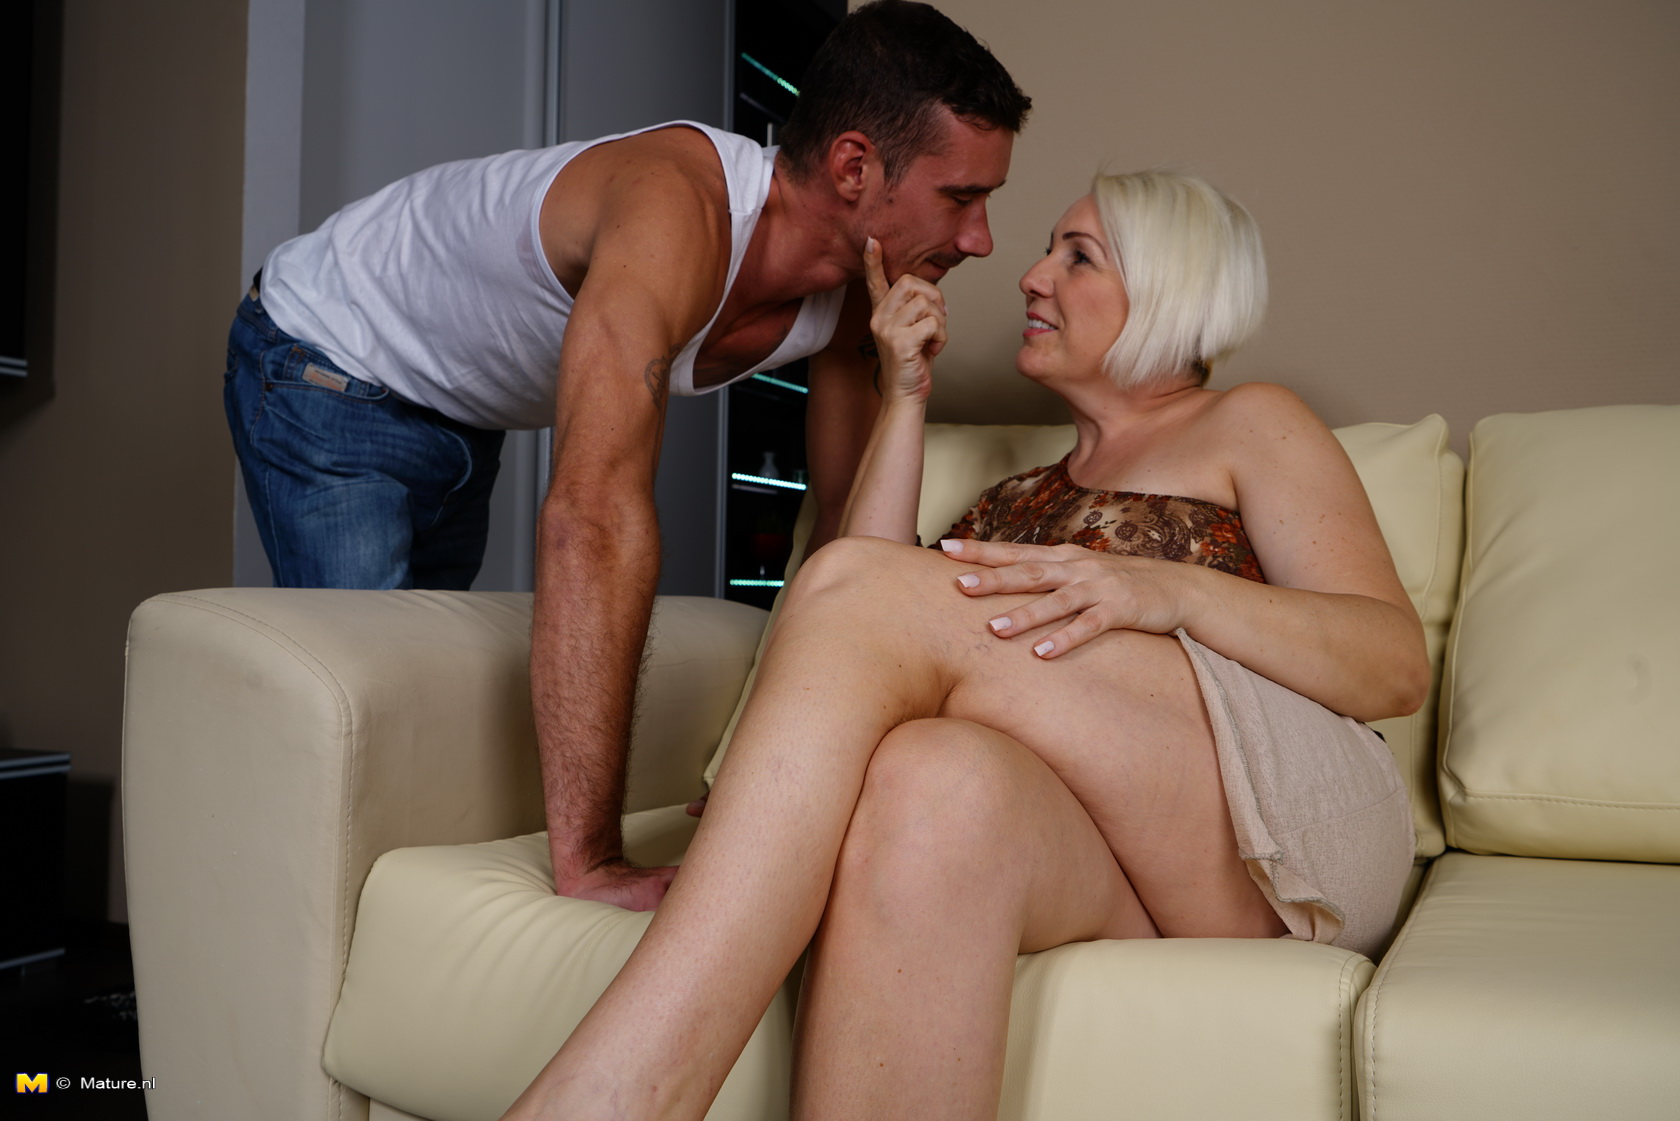 anonymous granny dating ending up in sexual intercourse with young guy who is eating granny out